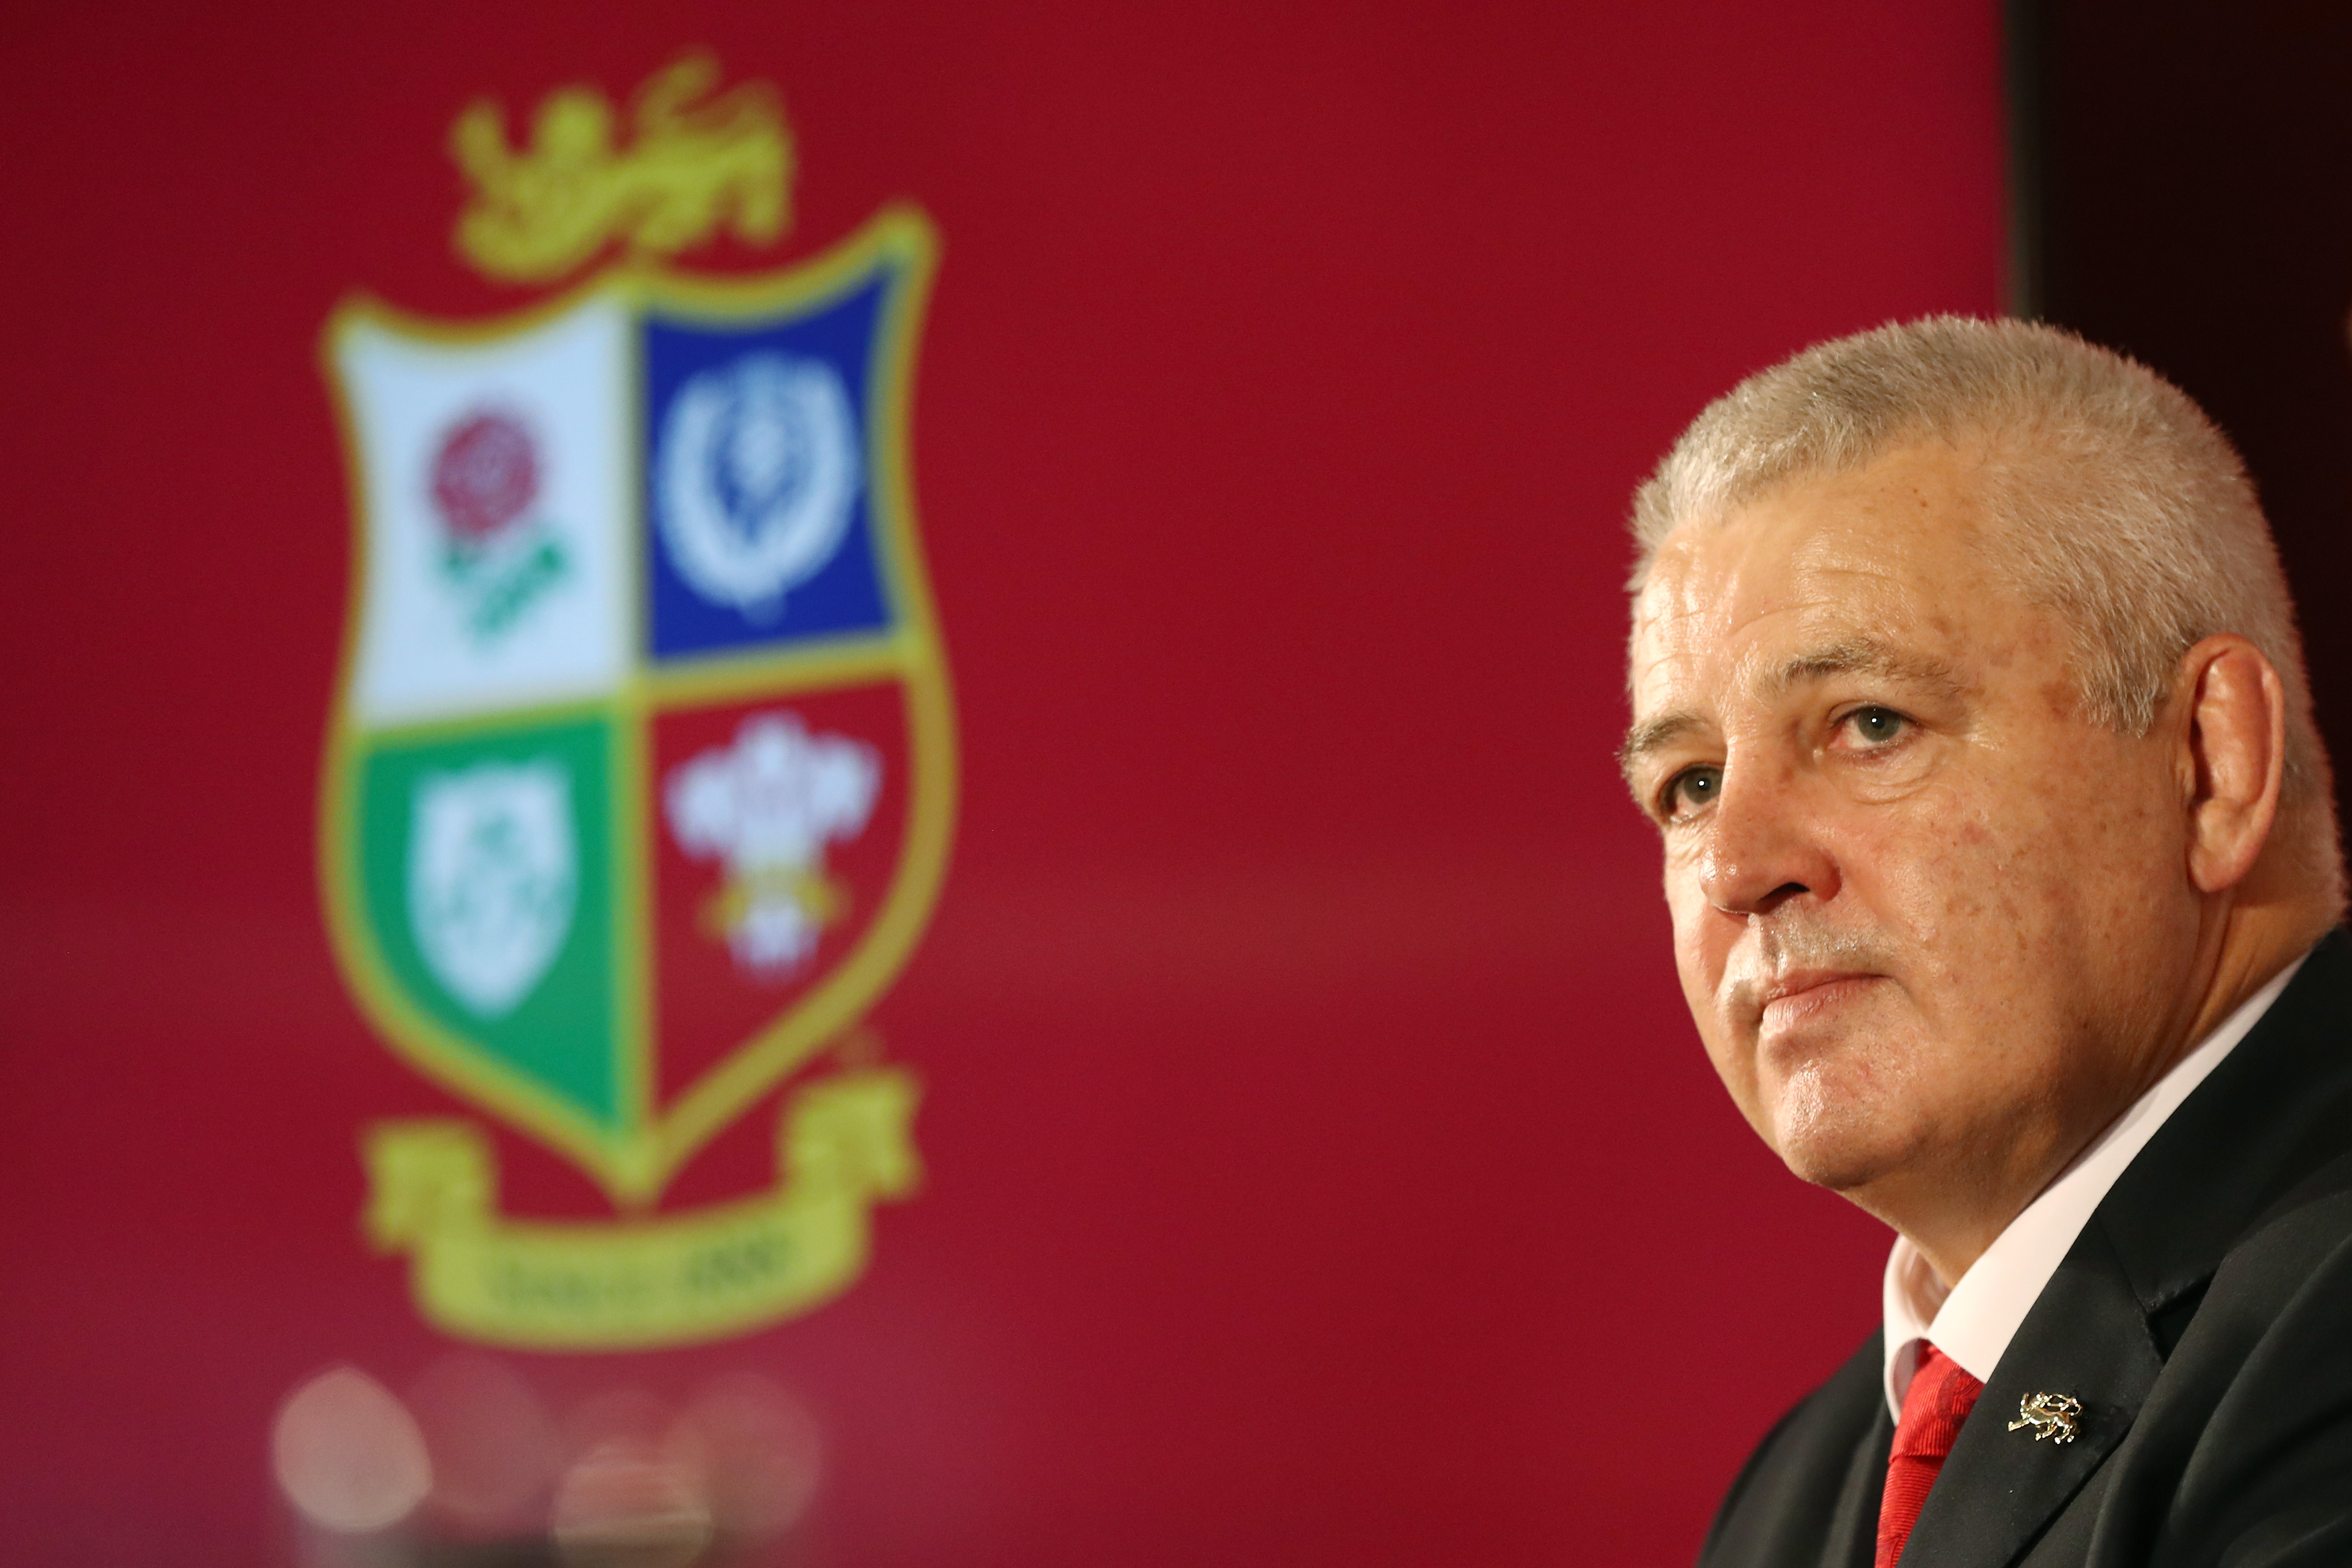 Warren Gatland is '100% confident' the Lions can beat New Zealand after being named coach